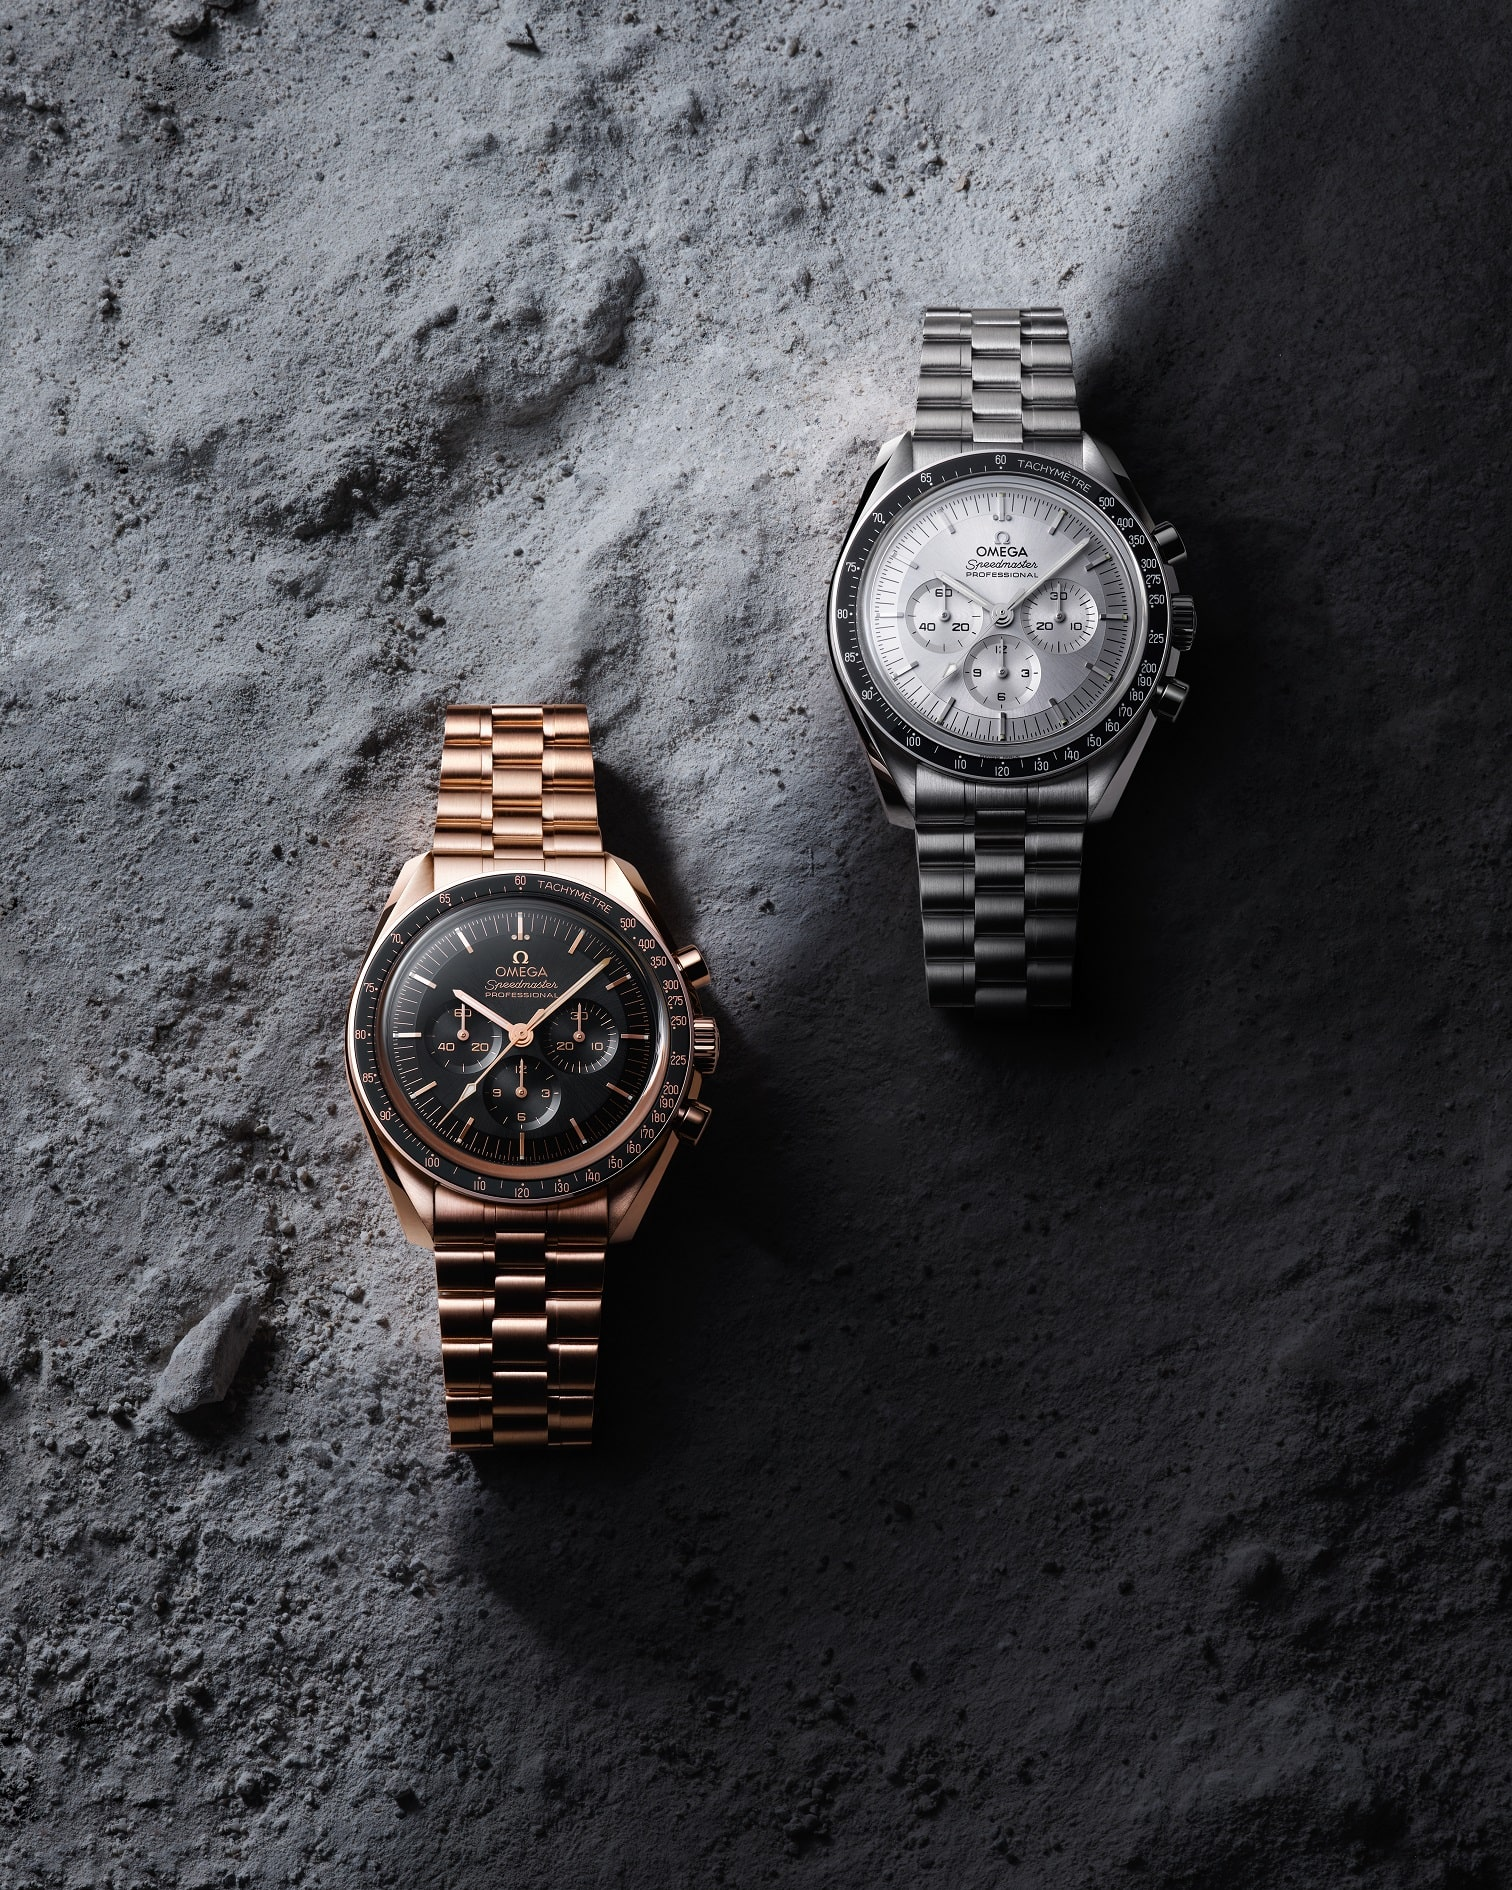 Gold and stainless steel versions